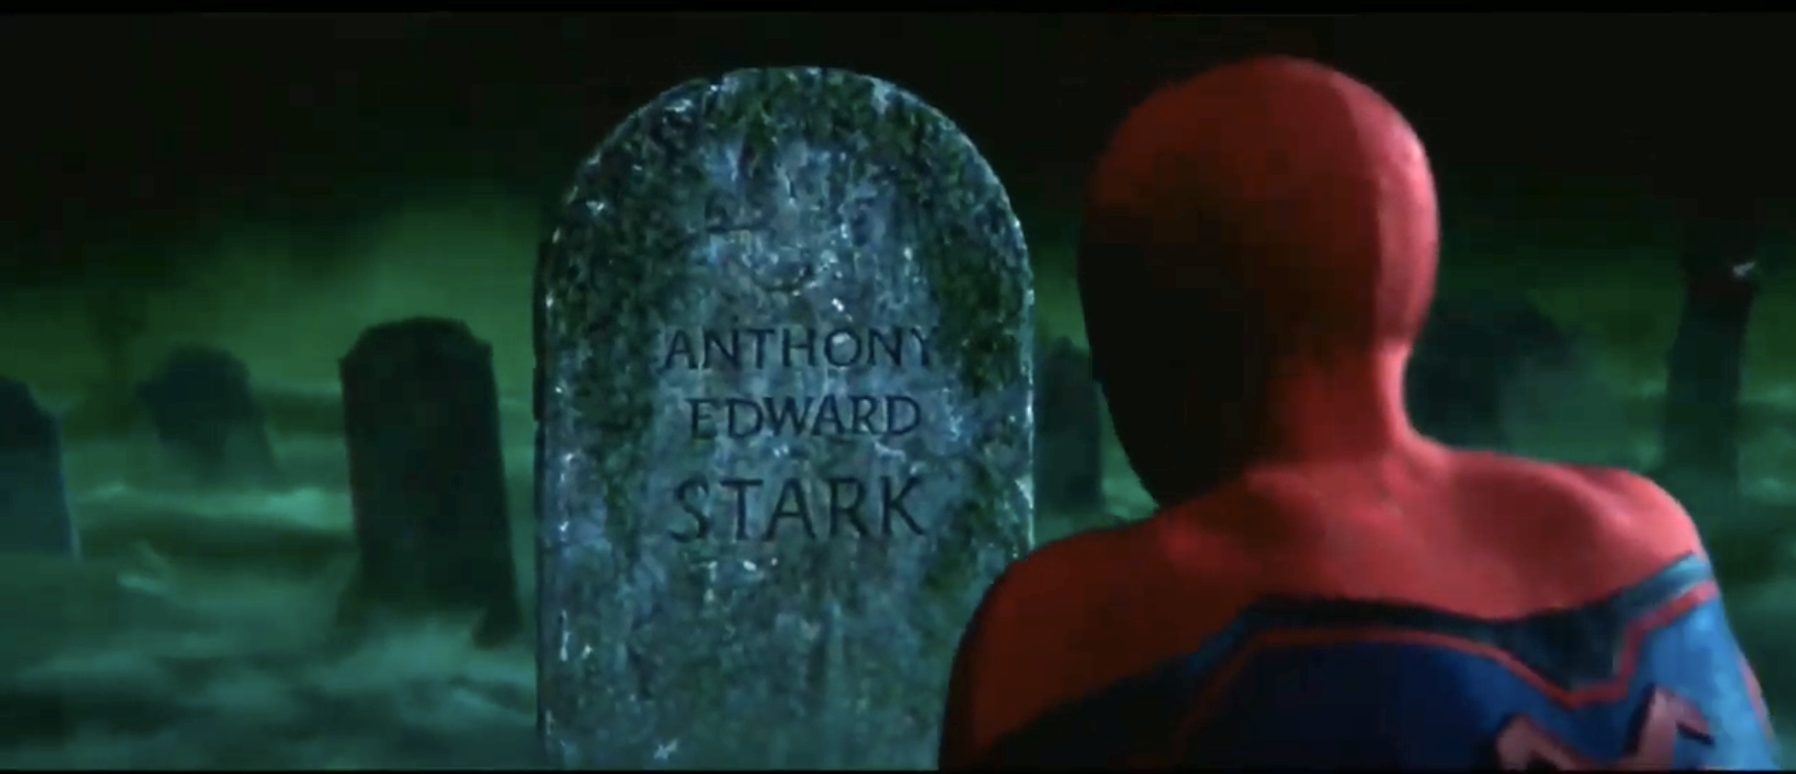 Peter Parker looking at Tony Stark's grave in an illusion scene in Far From Home.